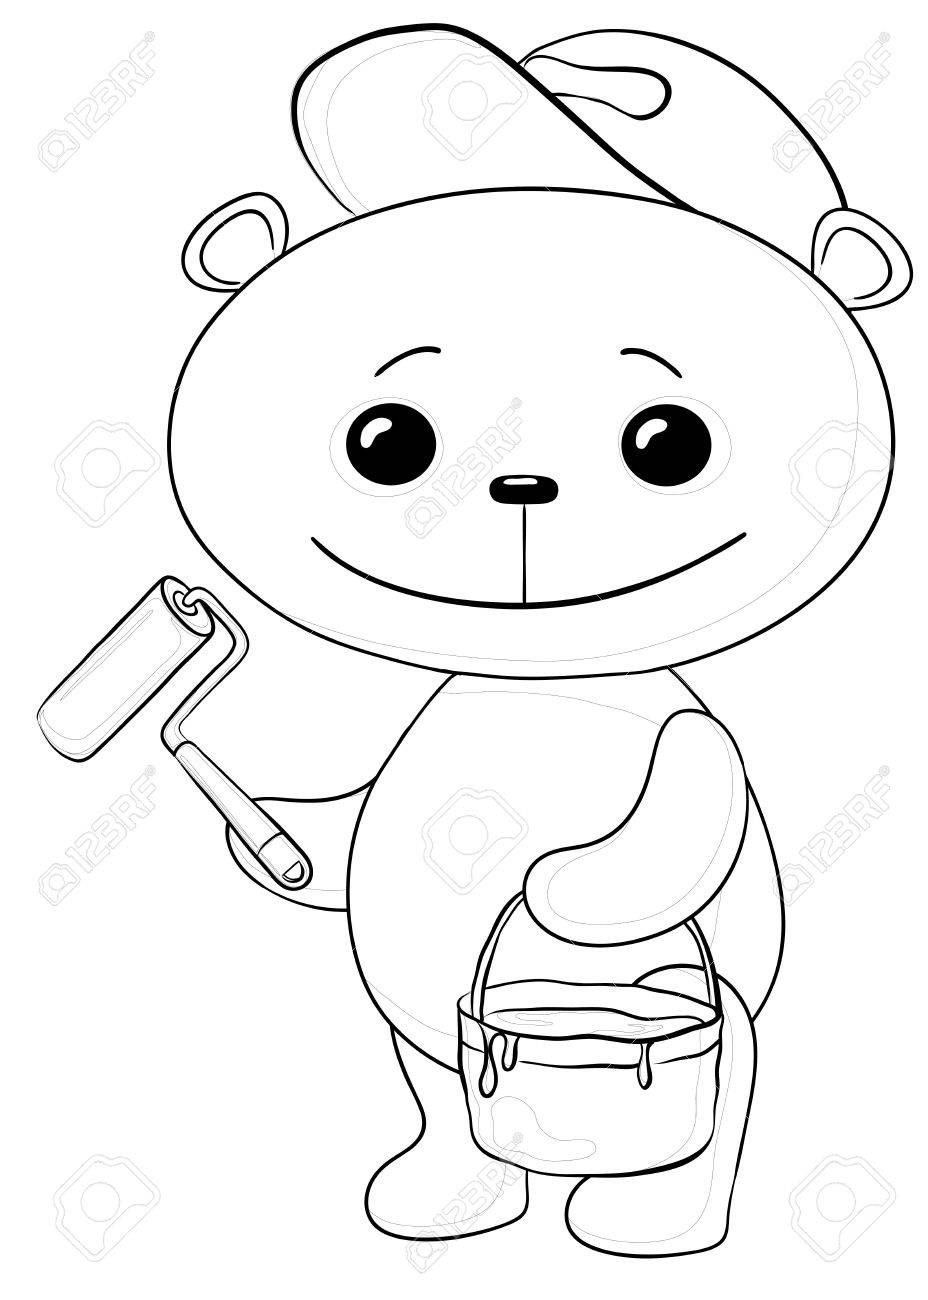 Cartoon, toy teddy bear worker house painter with a tool and a bucket of paint, contours Stock Vector - 10570865